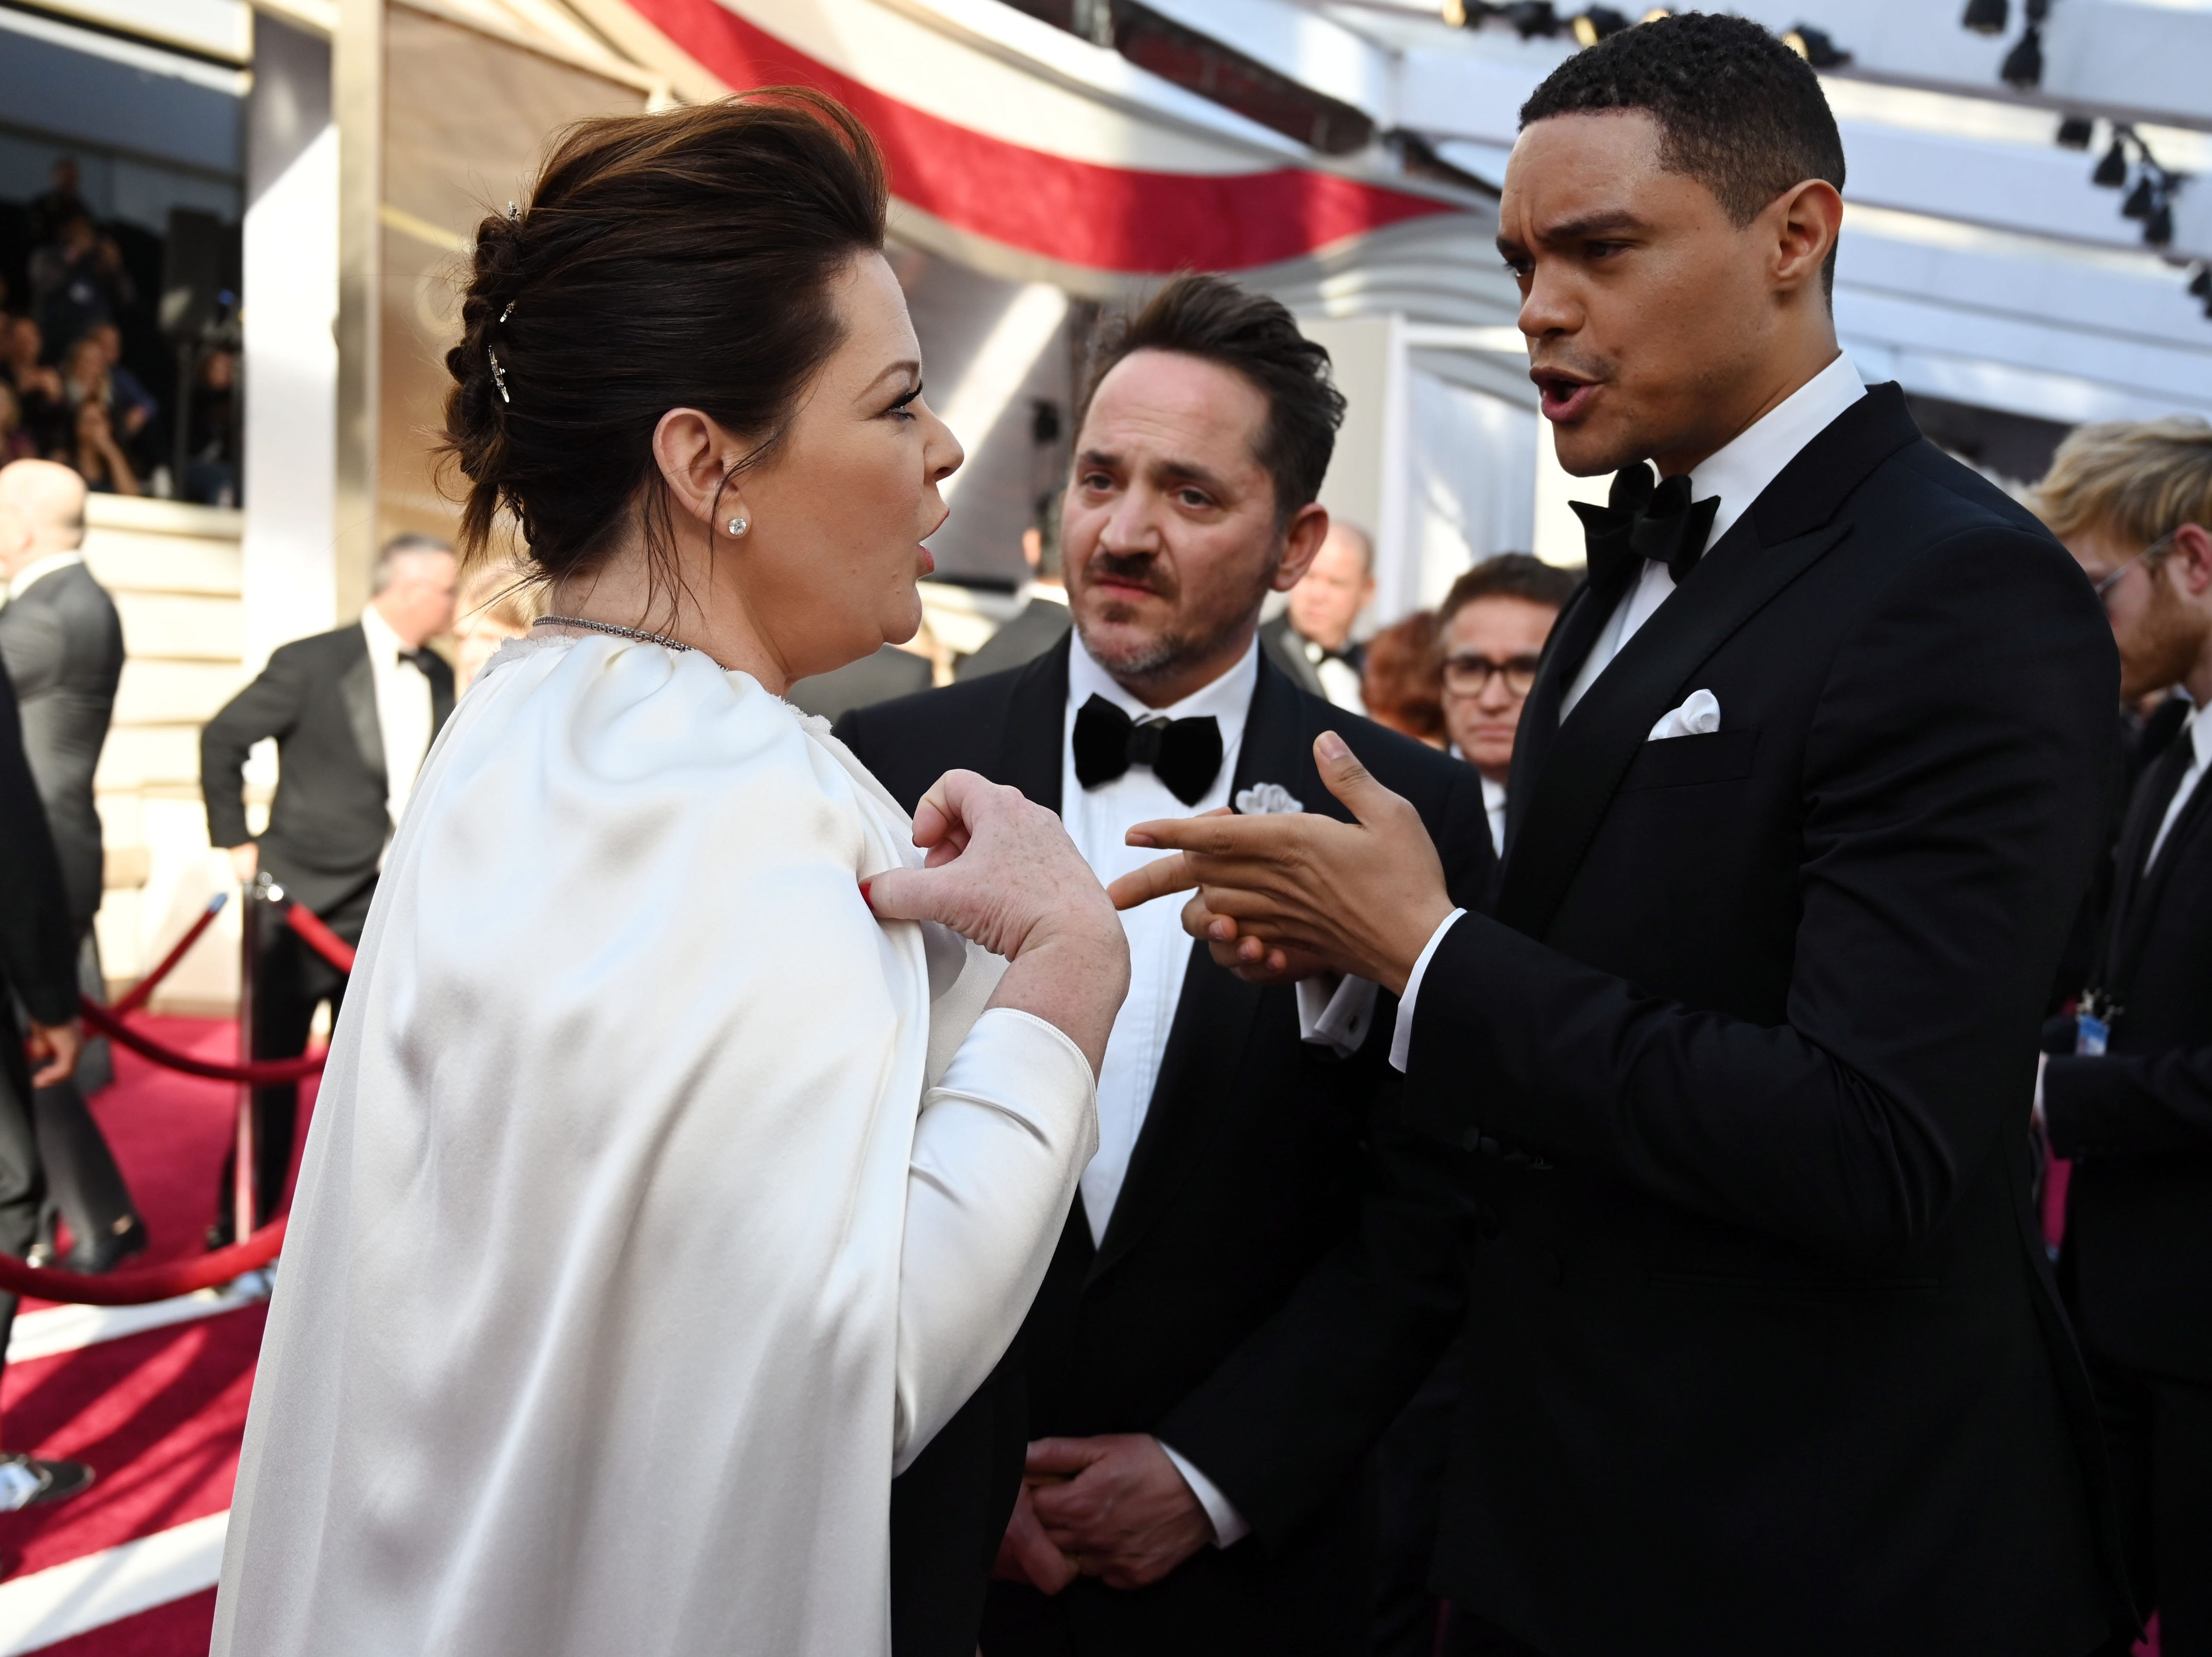 February 24, 2019; Los Angeles, CA, USA; Trevor Noah (r)  talks with Melissa McCarthy and her husband Ben Falcone as they arrive at the 91st Academy Awards at the Dolby Theatre. Mandatory Credit: Robert Hanashiro-USA TODAY NETWORK (Via OlyDrop)